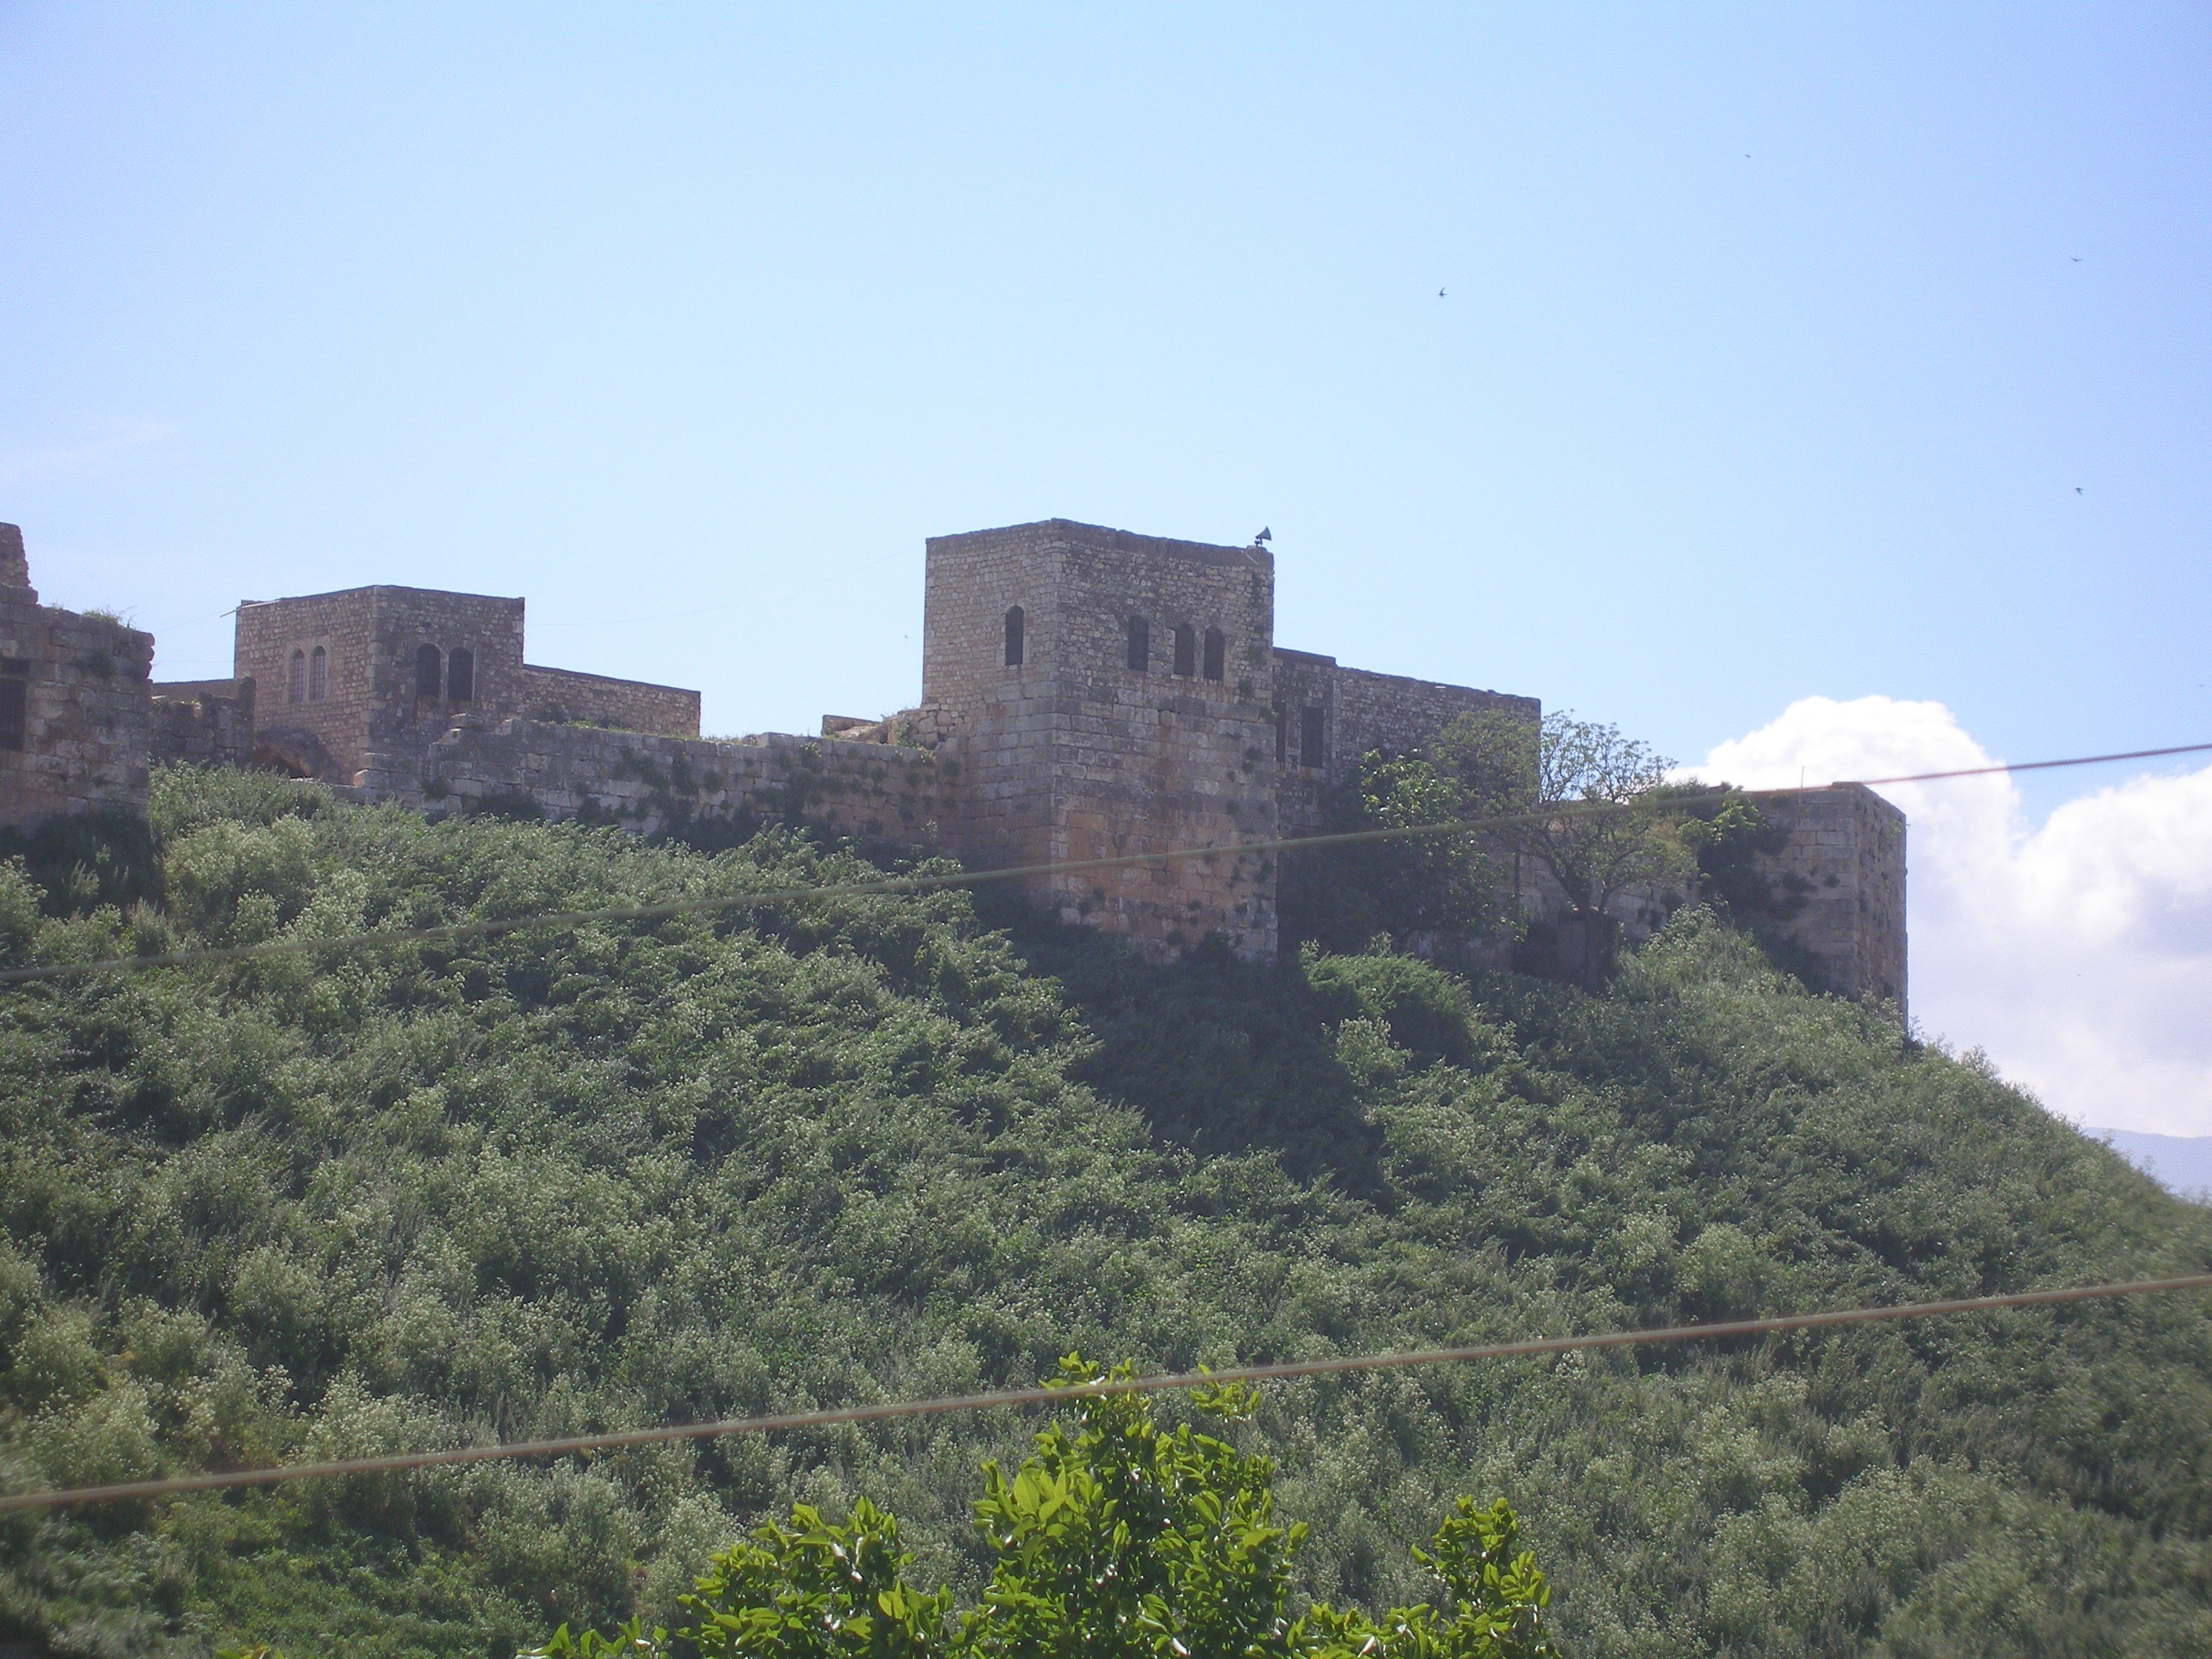 A picture of Qalaat al-Mudiq taken in April 2009 (Photo by: Diana Darke)